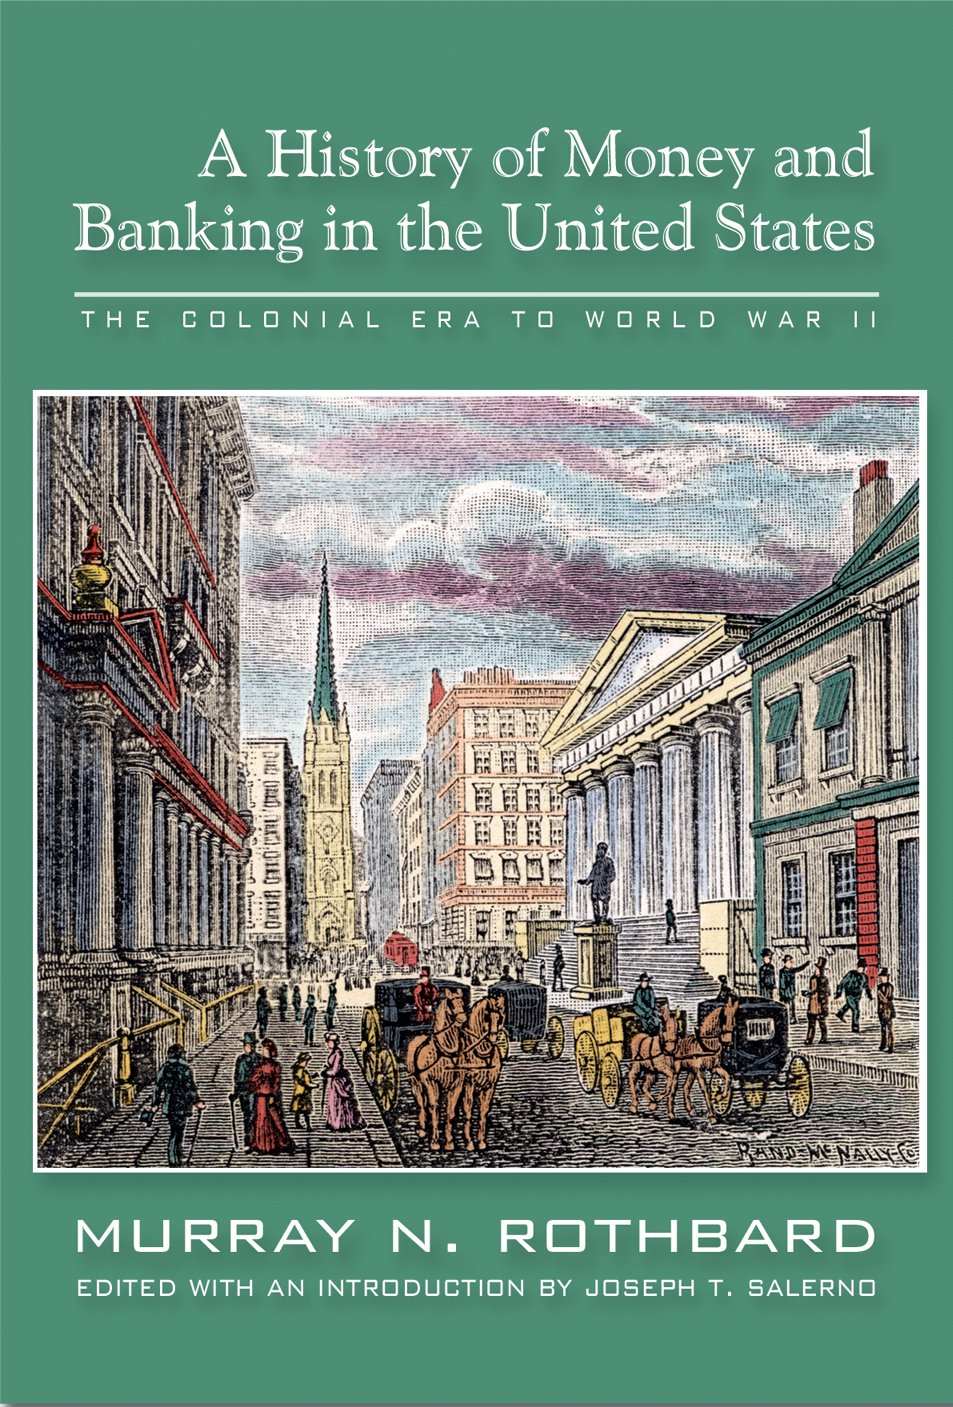 History of Money and Banking in the United States: The Colonial Era to World War II